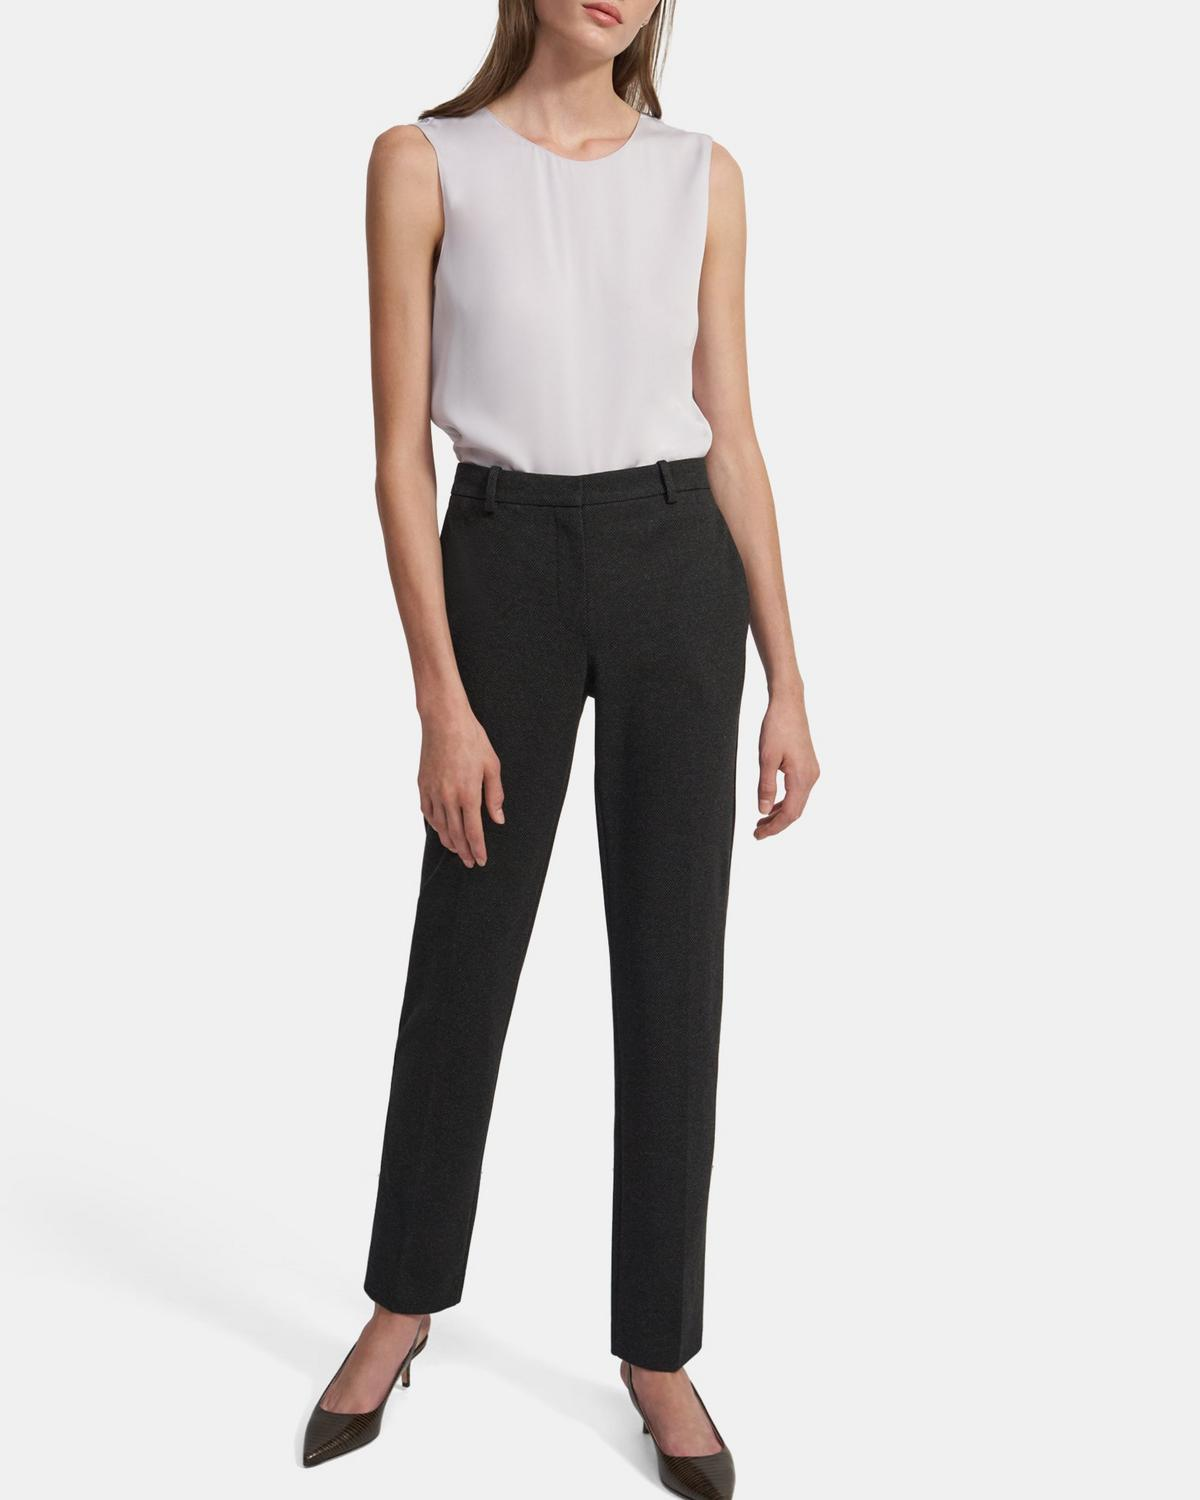 Treeca Full Length Pant in Viscose Knit